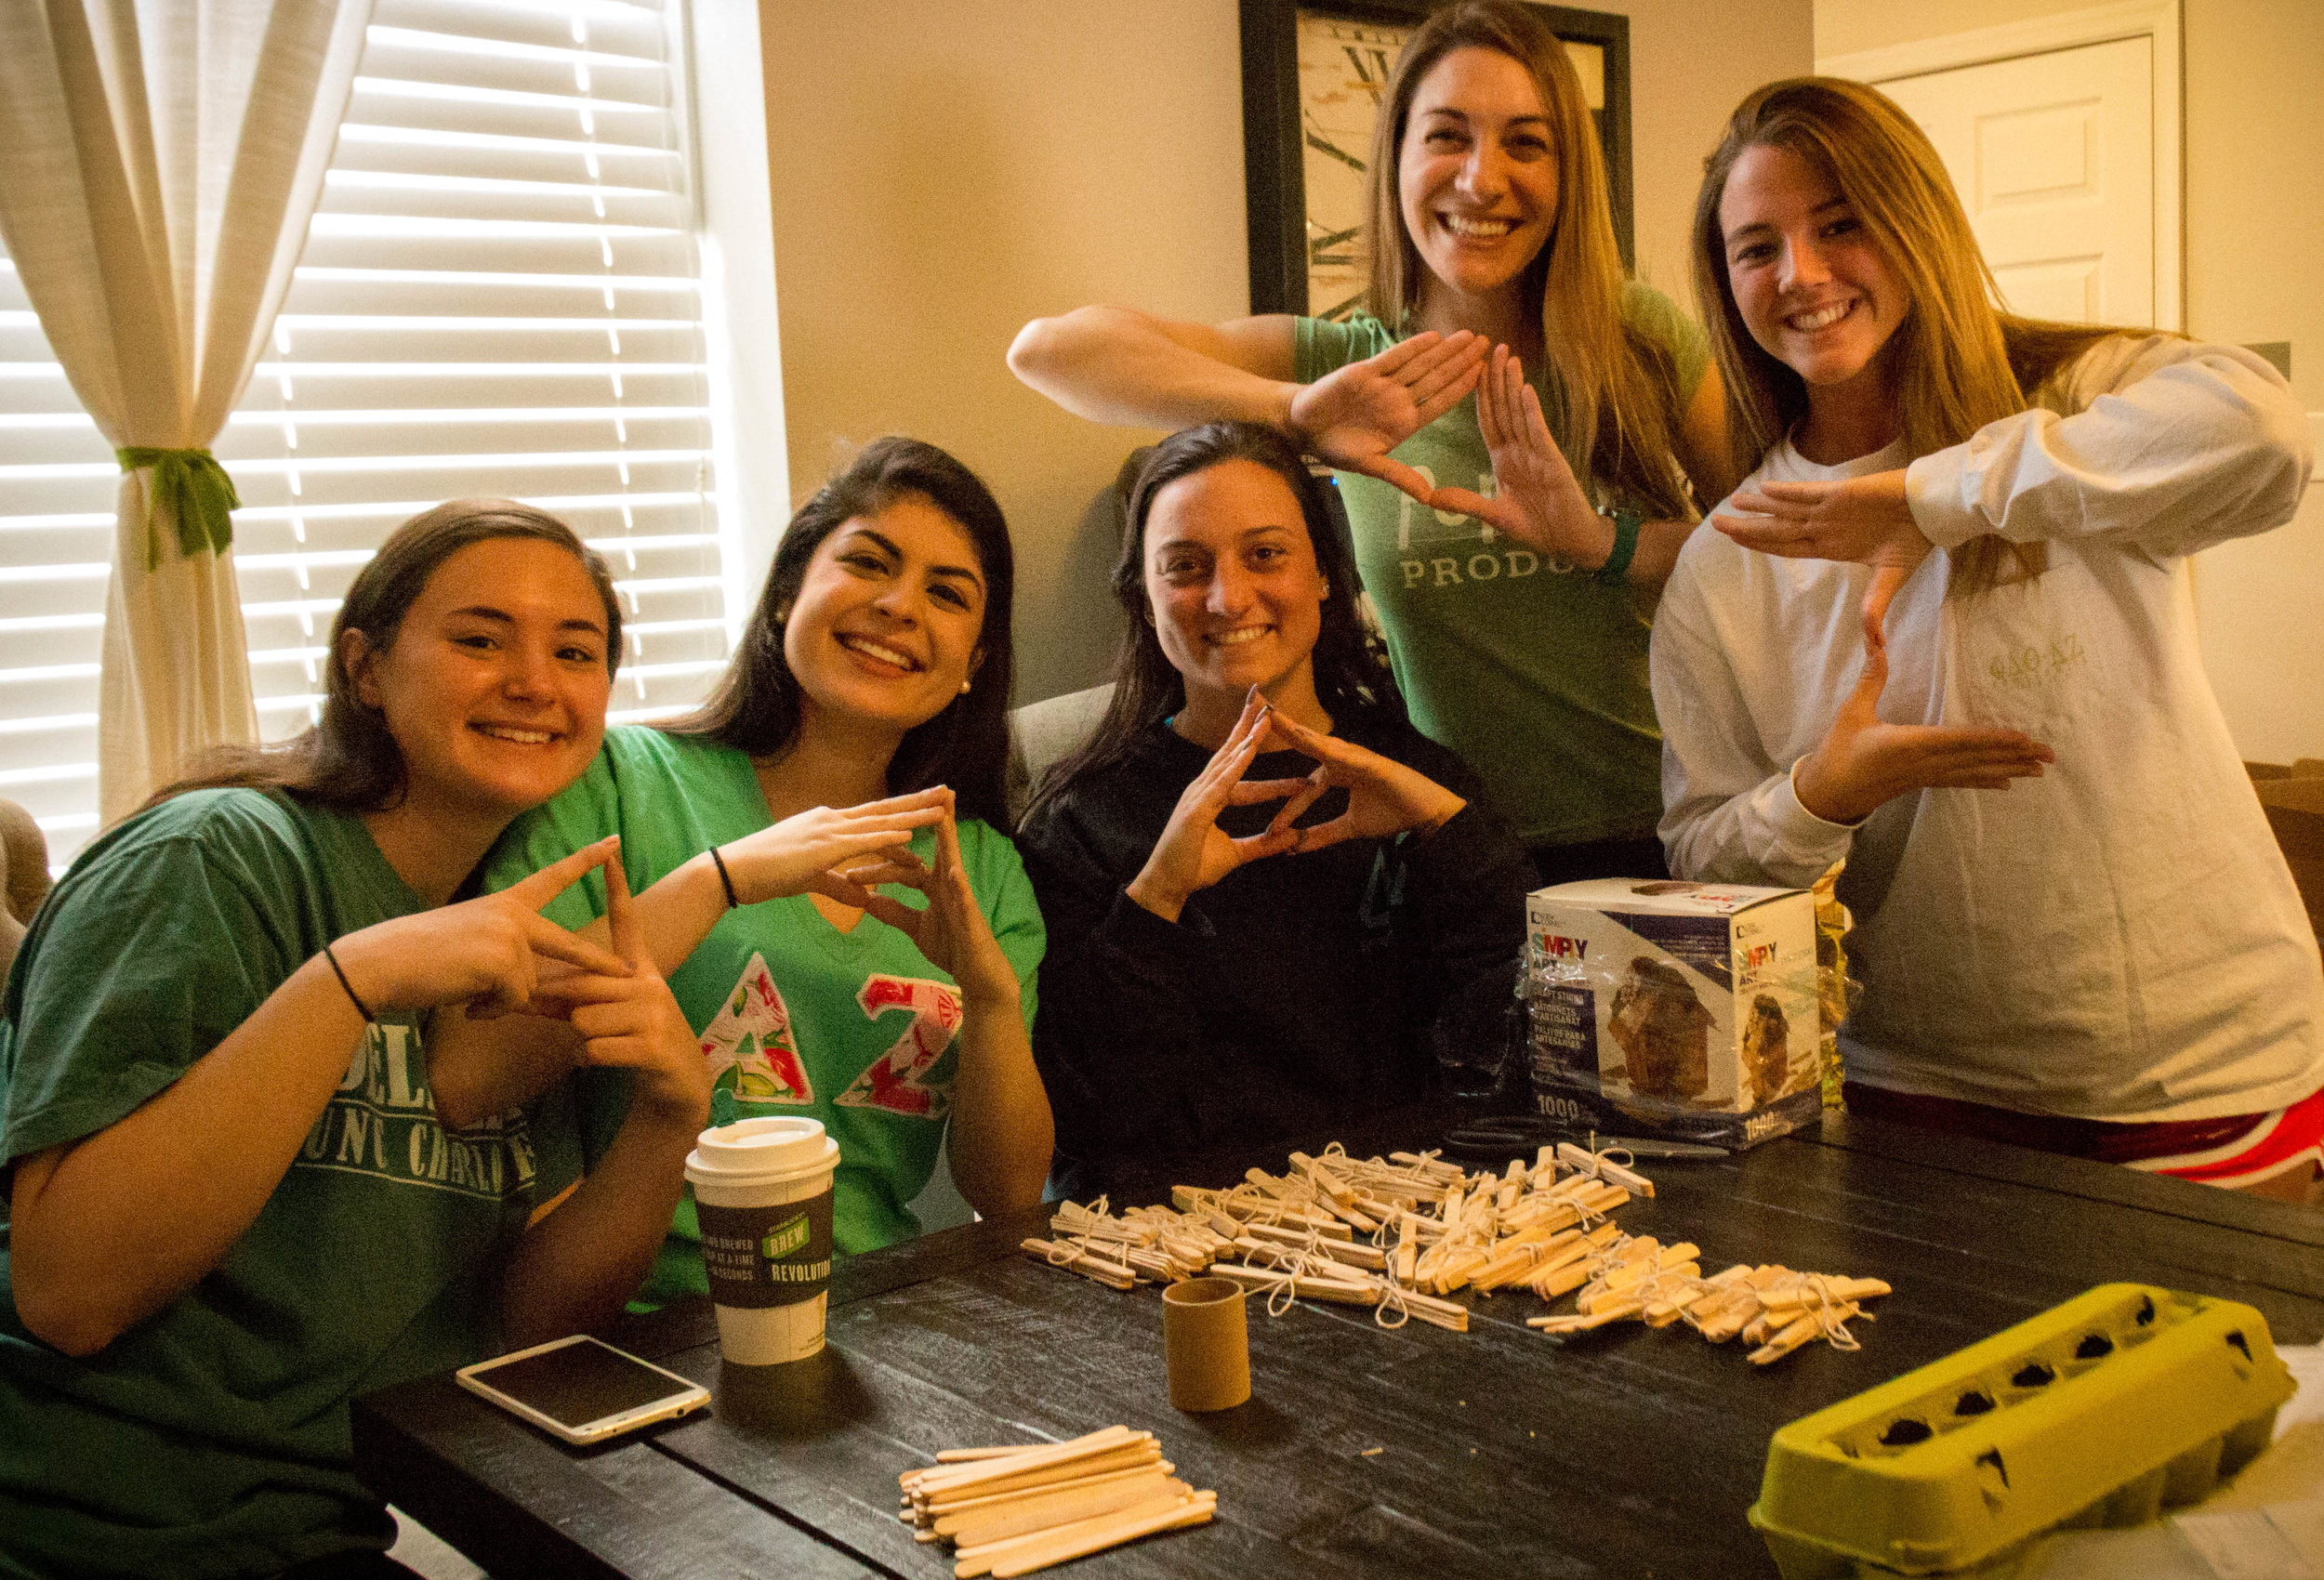 Pop Up Produce Delta Zeta Volunteer Event-5.jpg